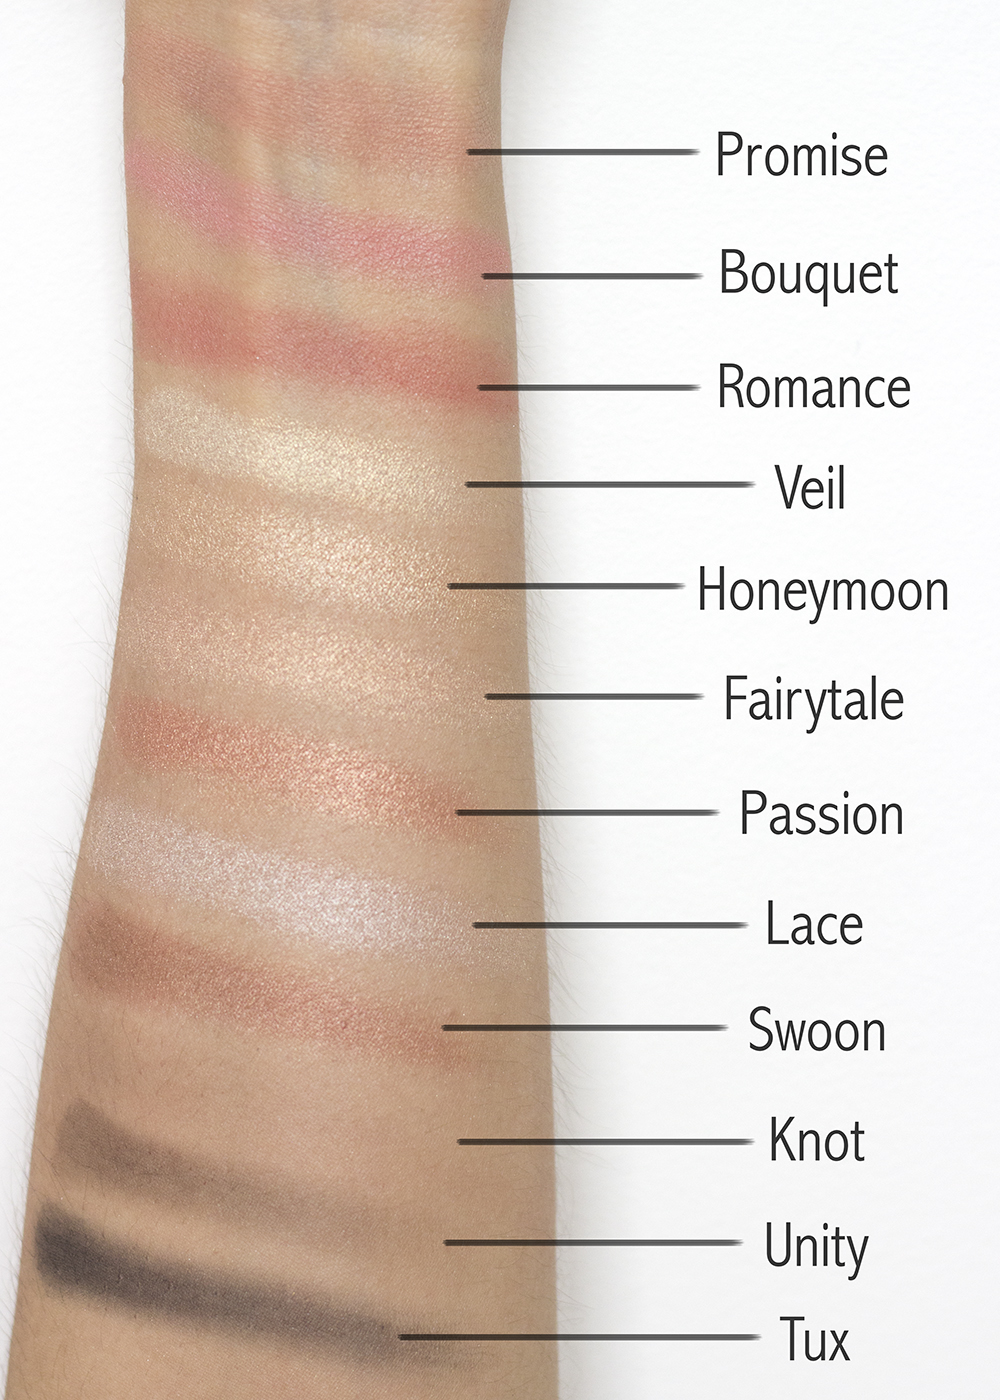 Pixi Beauty Palette Chloette Romantic Radiance Swatches